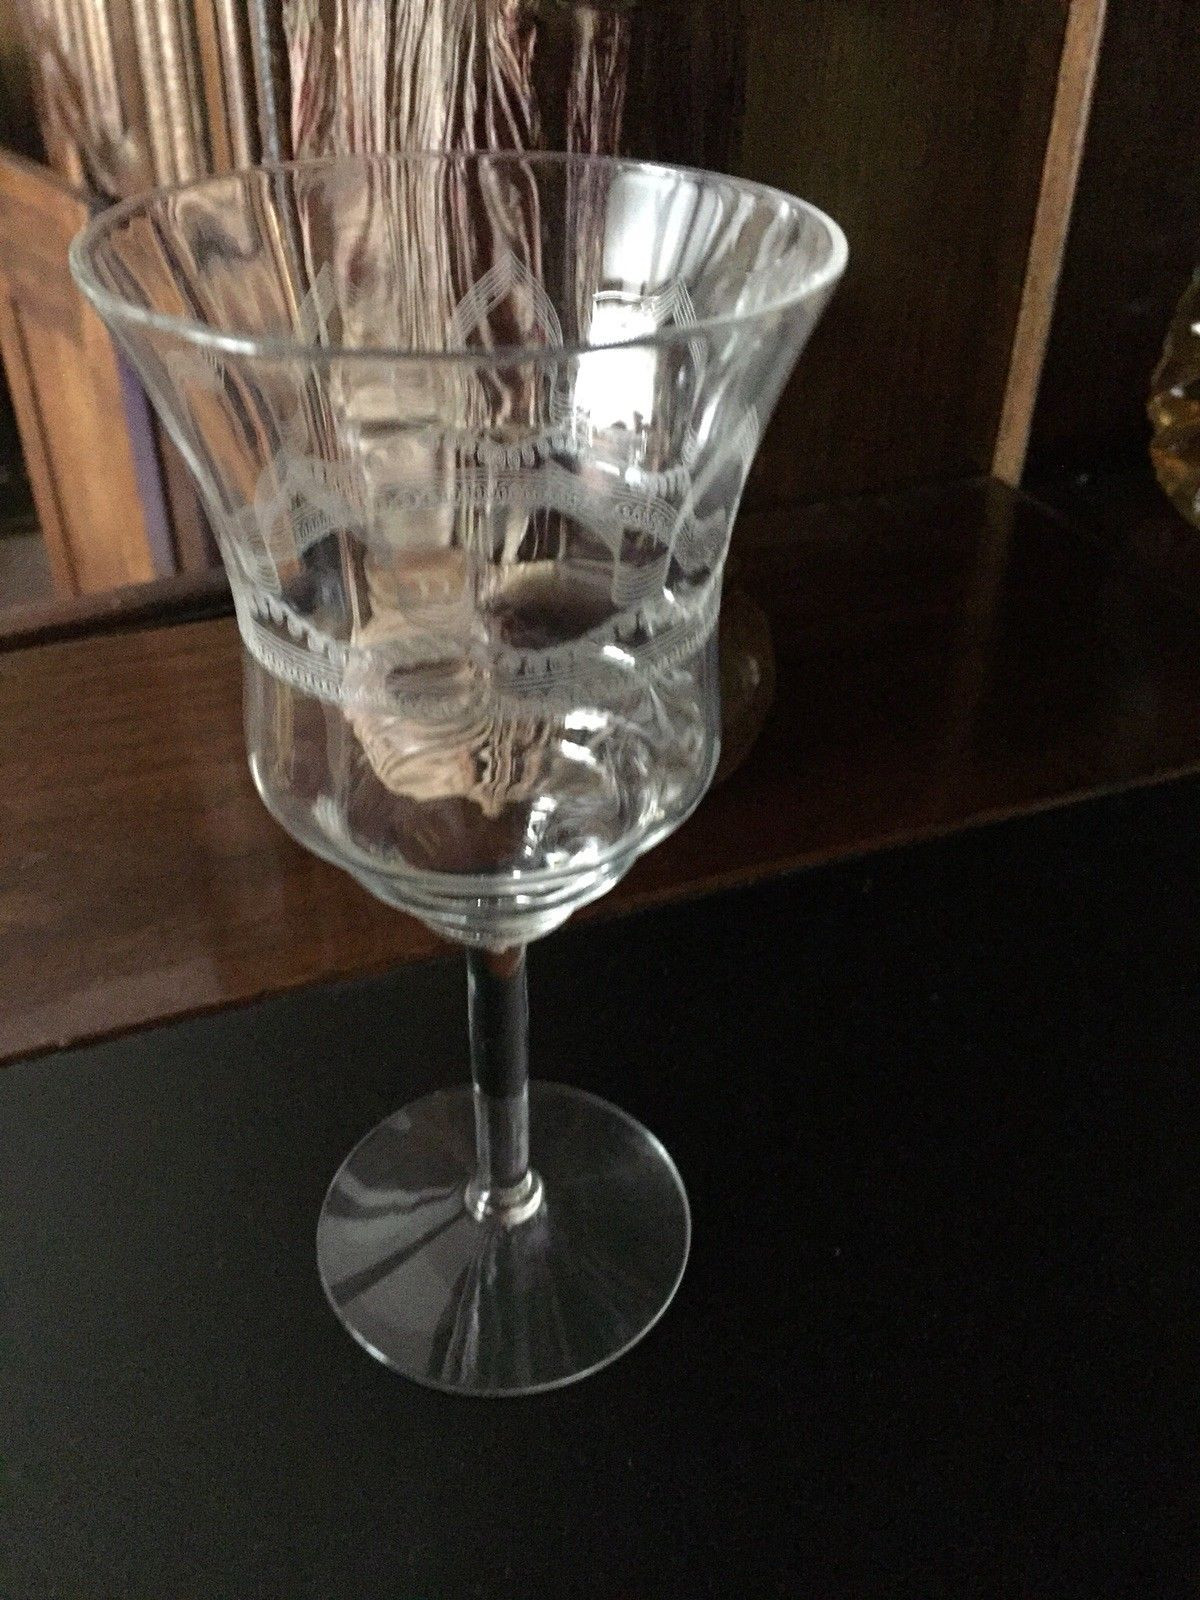 12 Lovable Crystal Bud Vases Waterford 2021 free download crystal bud vases waterford of depression era vintage crystal etched wine glasses 6 unknown maker in 1 of 8 see more